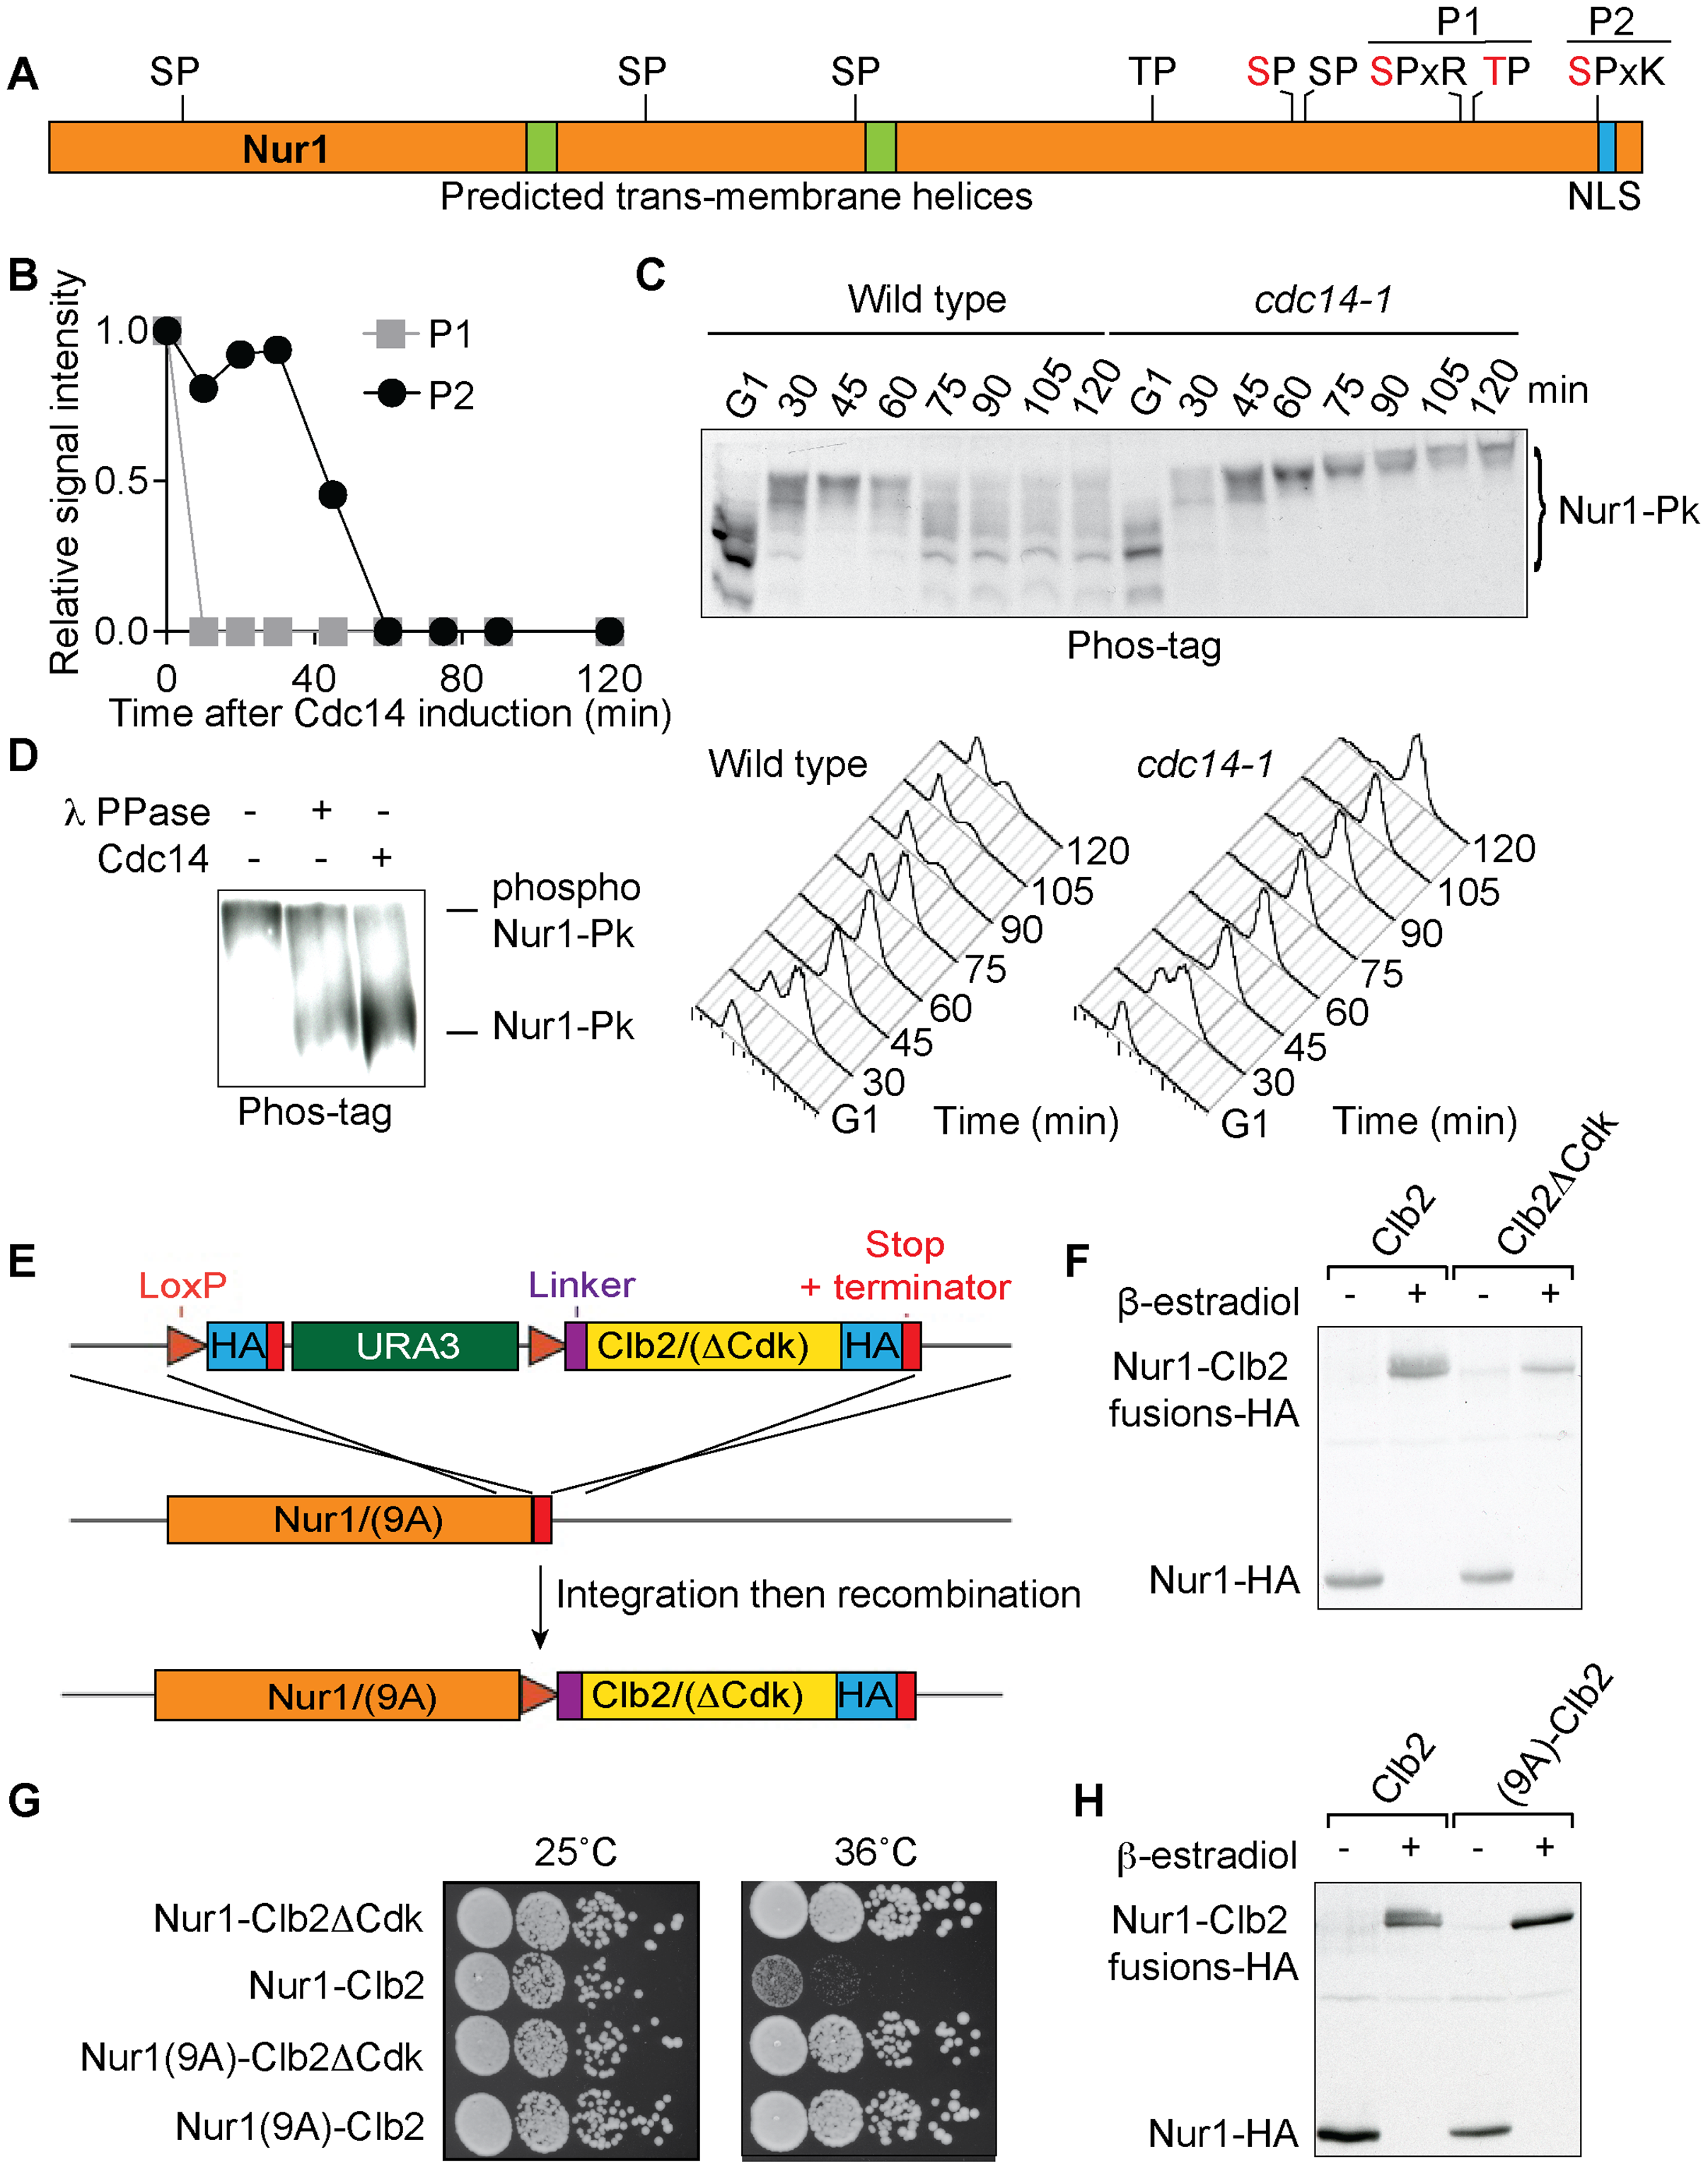 Nur1 dephosphorylation by Cdc14 in anaphase. A